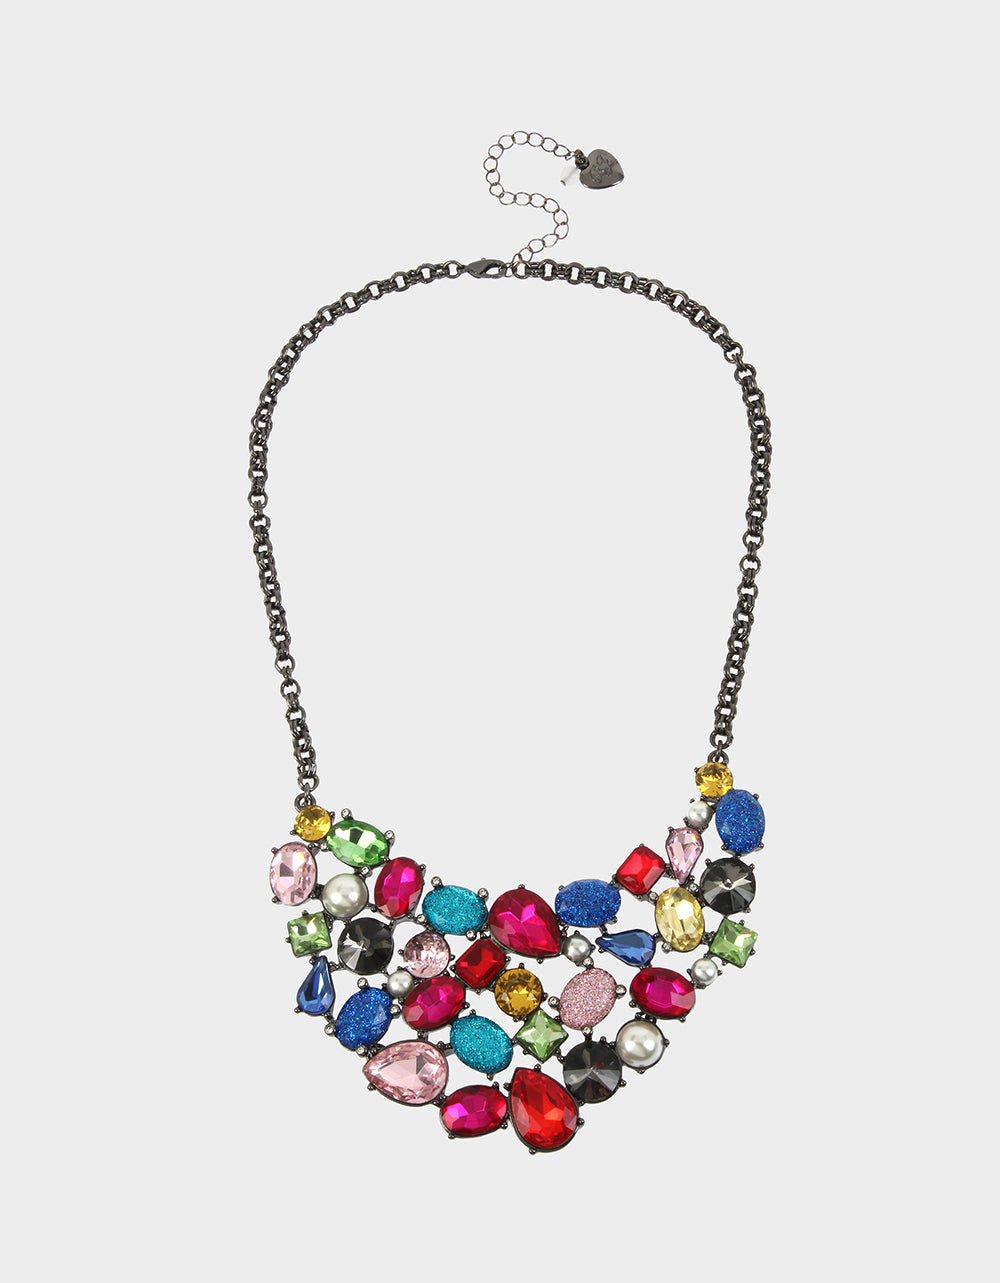 BLING THING BIB NECKLACE RAINBOW MULTI - JEWELRY - Betsey Johnson